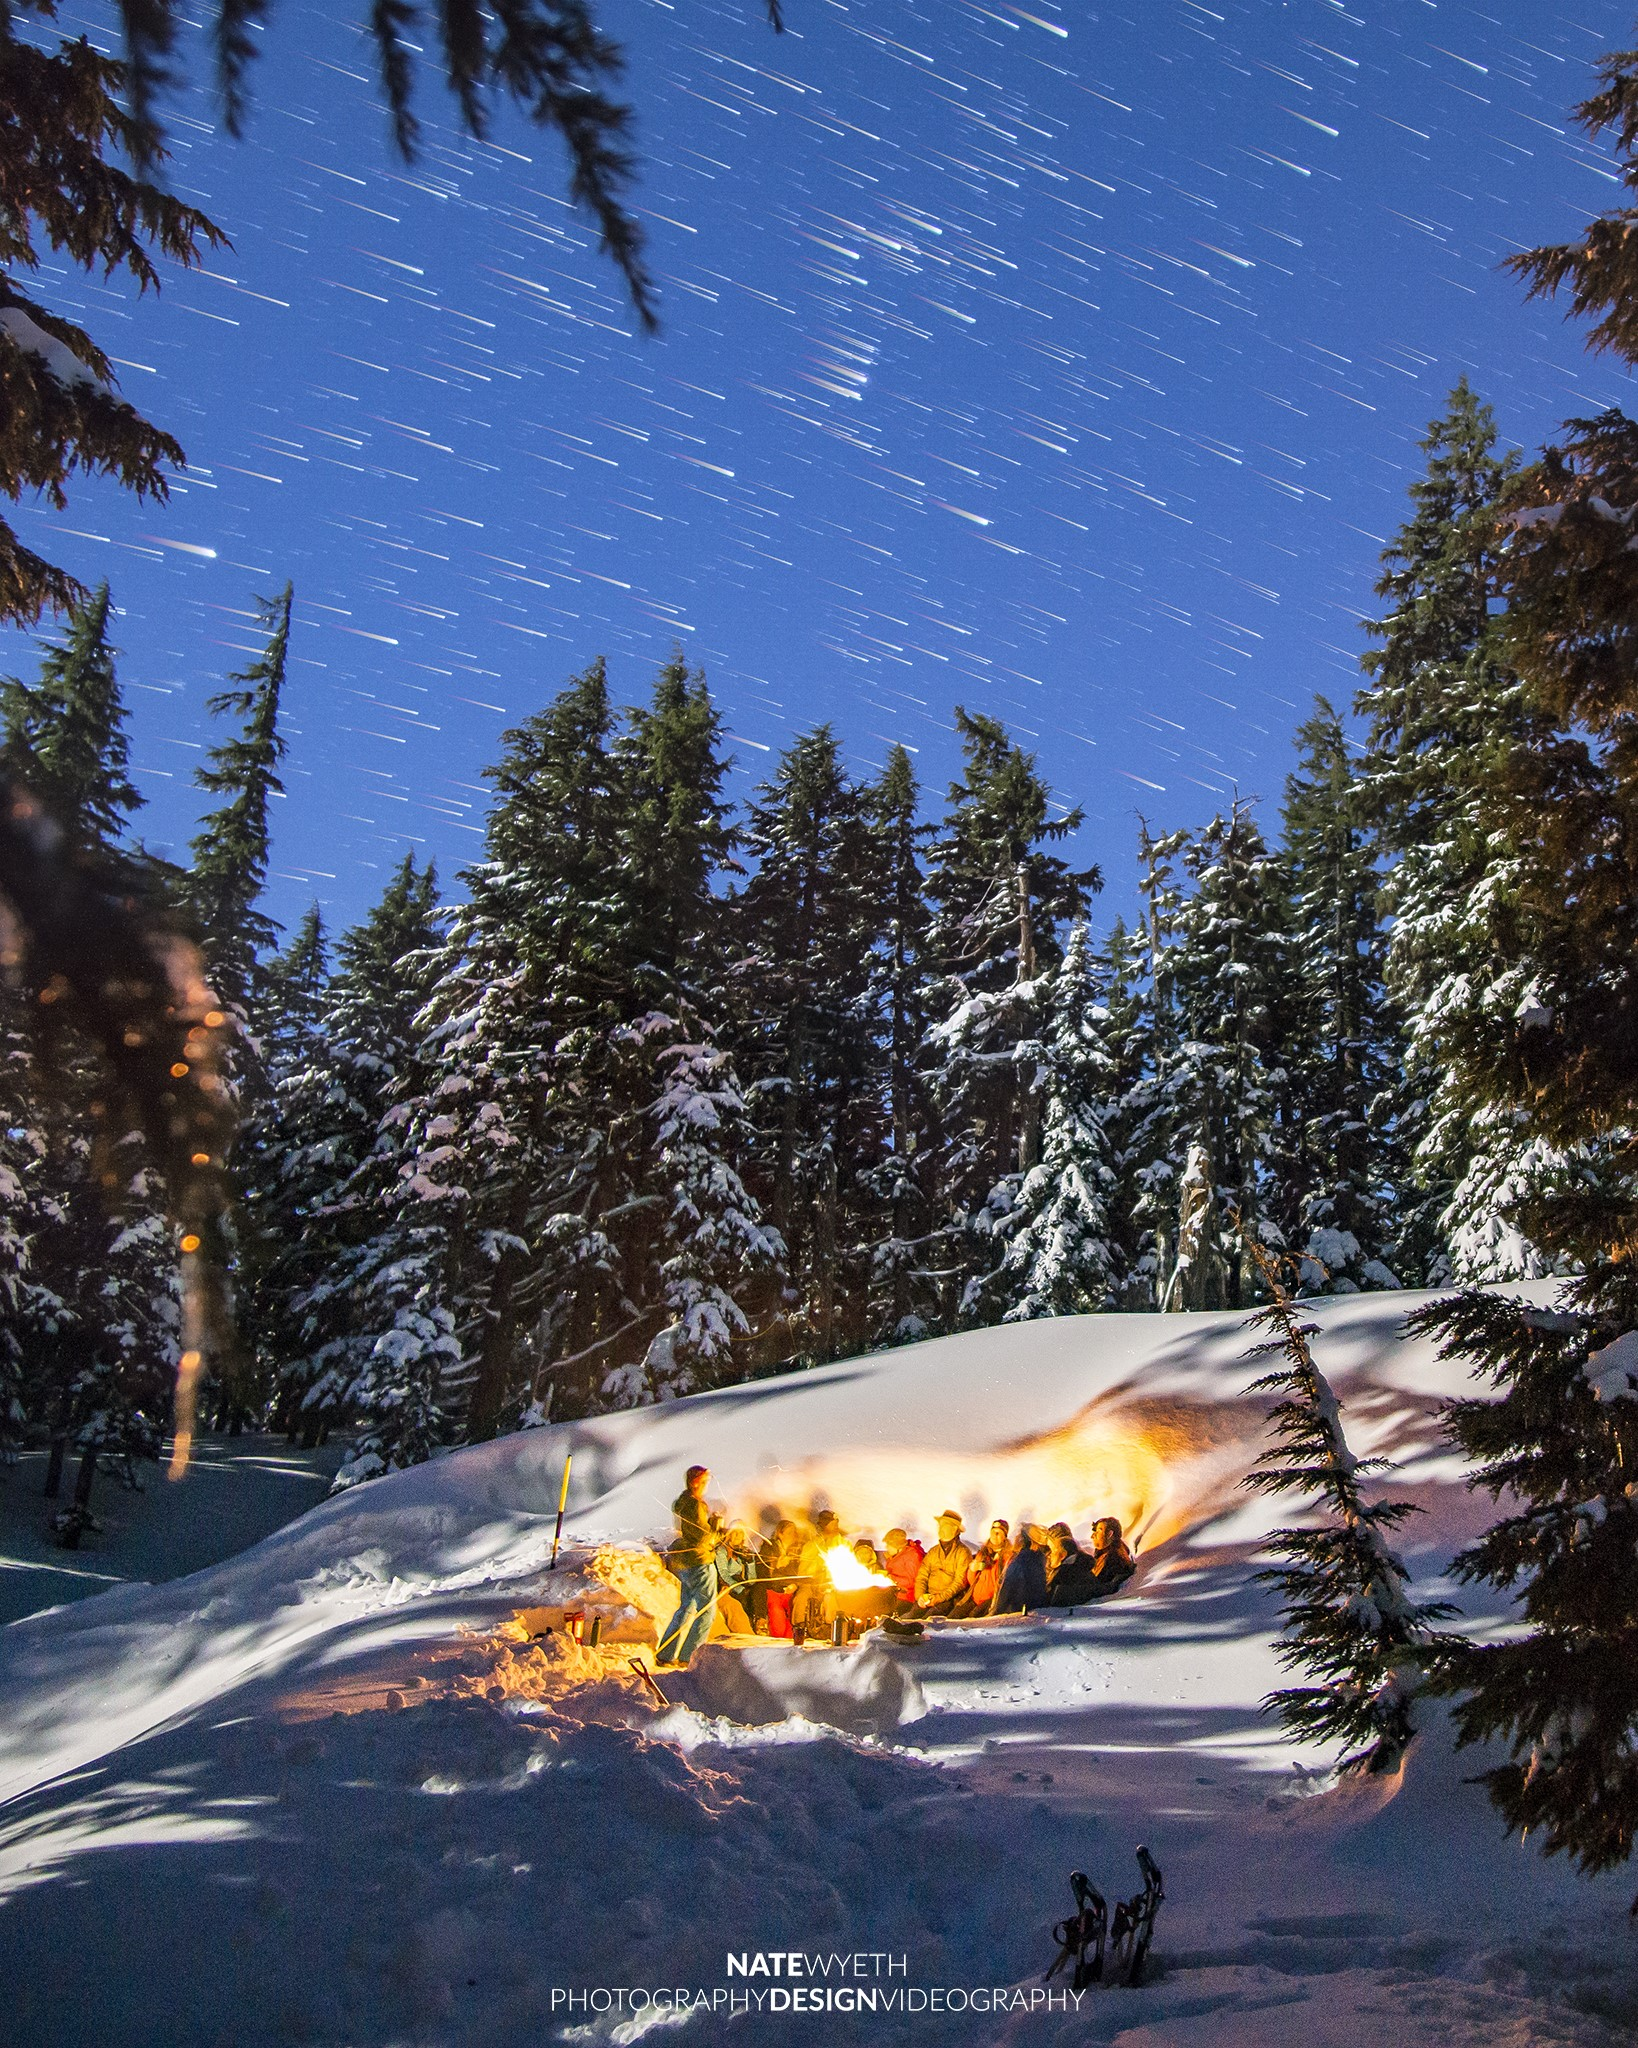 Snowshoe adventure with Wanderlust Tours in Bend, OR